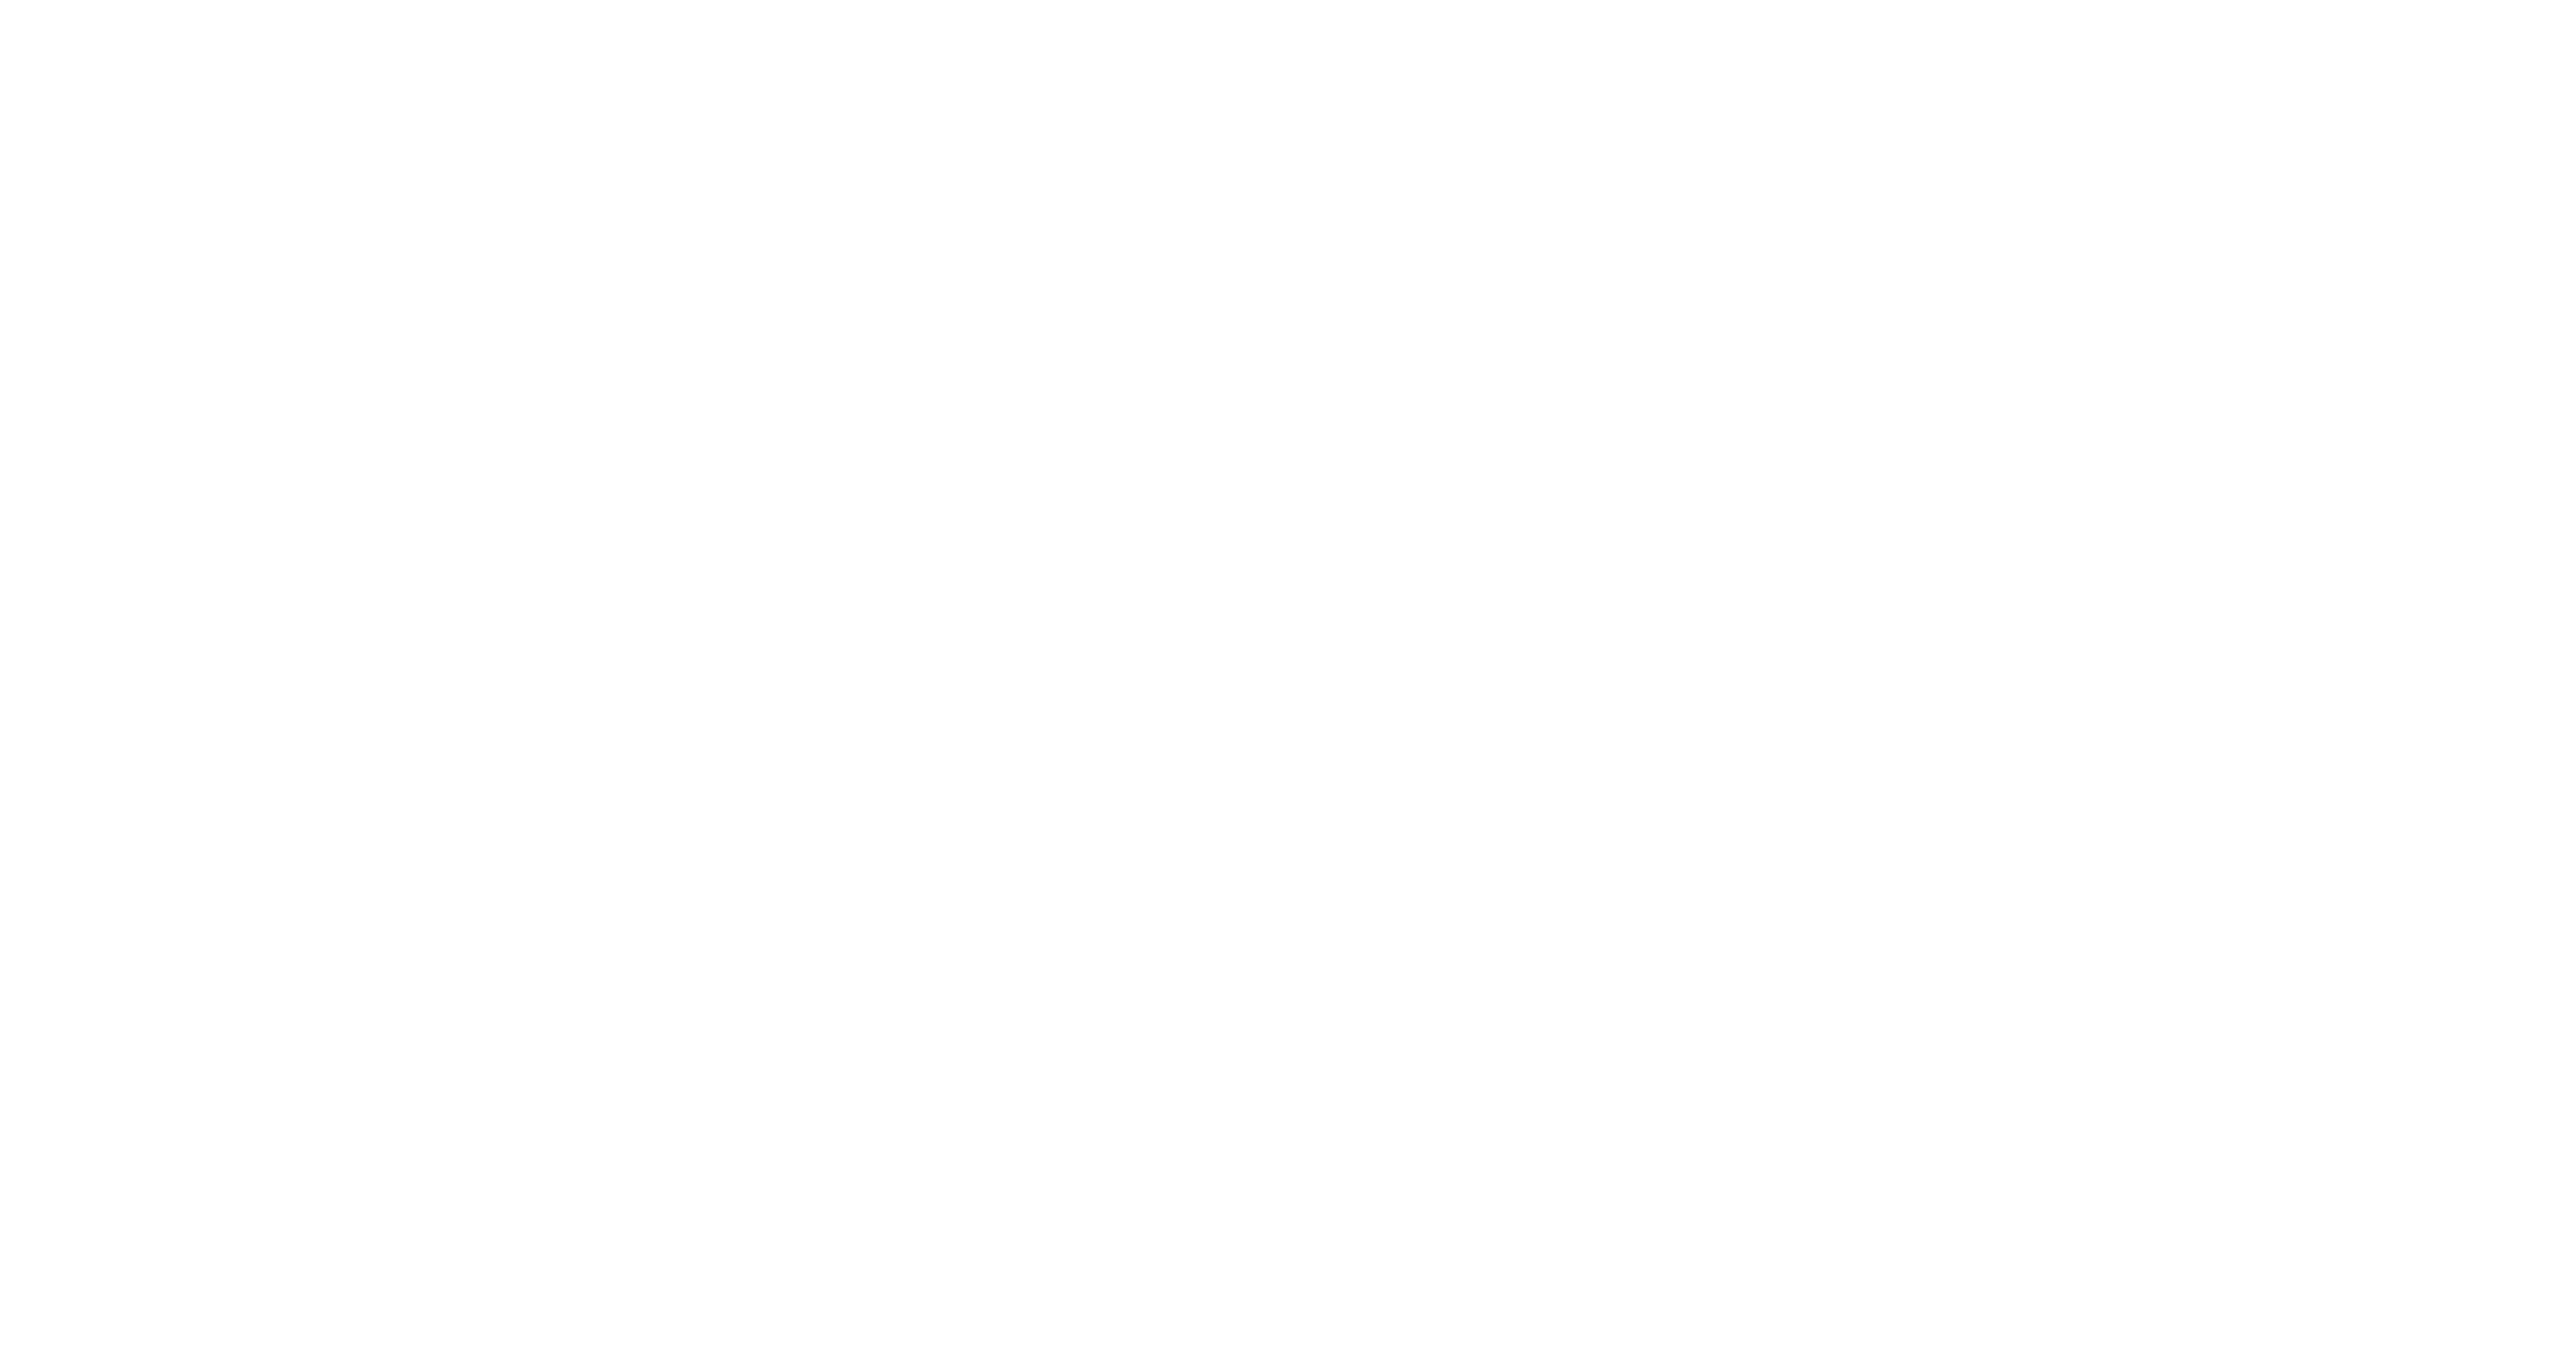 Peregrine Adventures